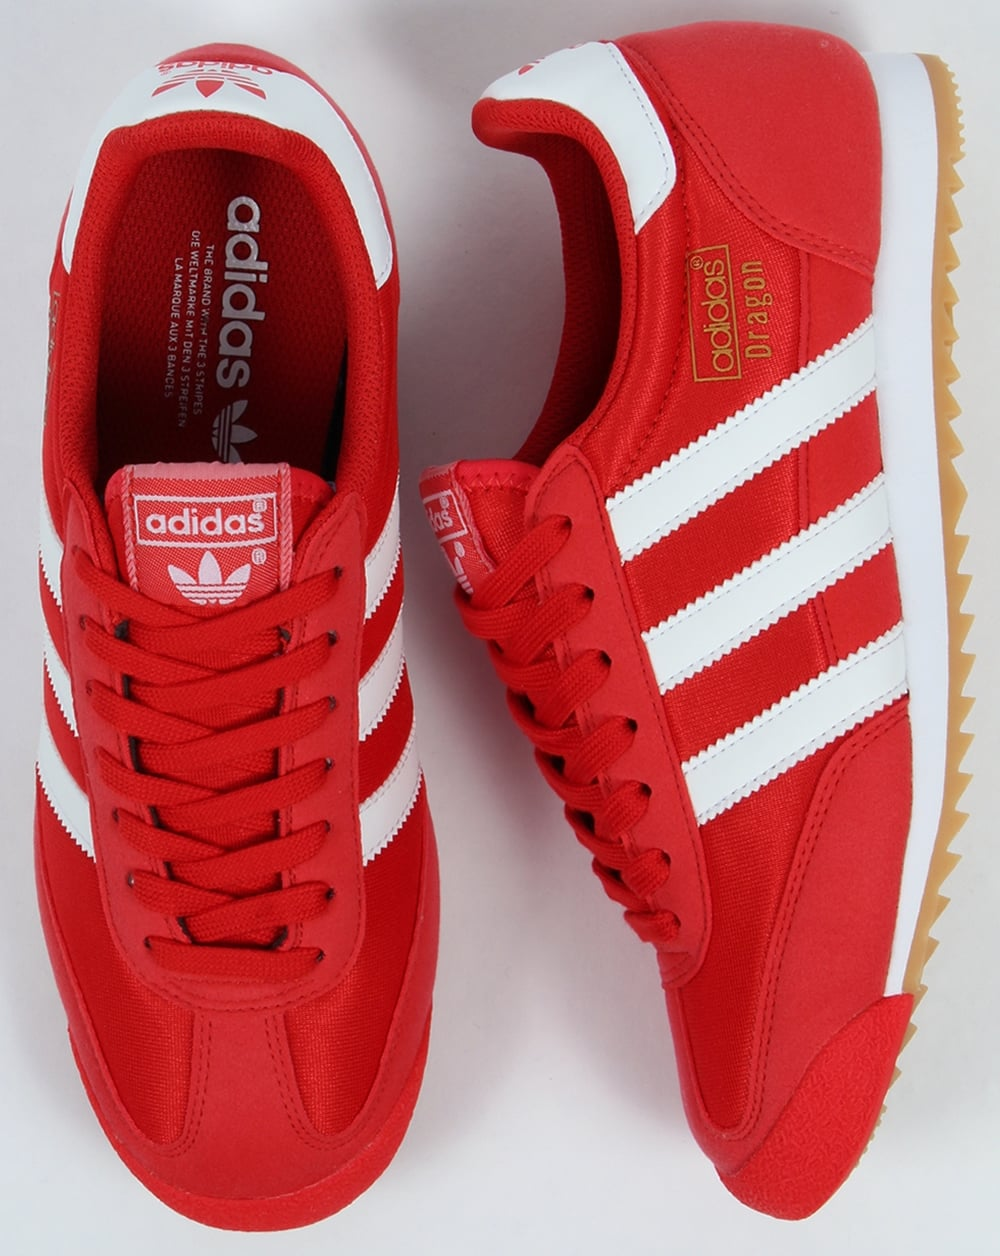 adidas dragons red